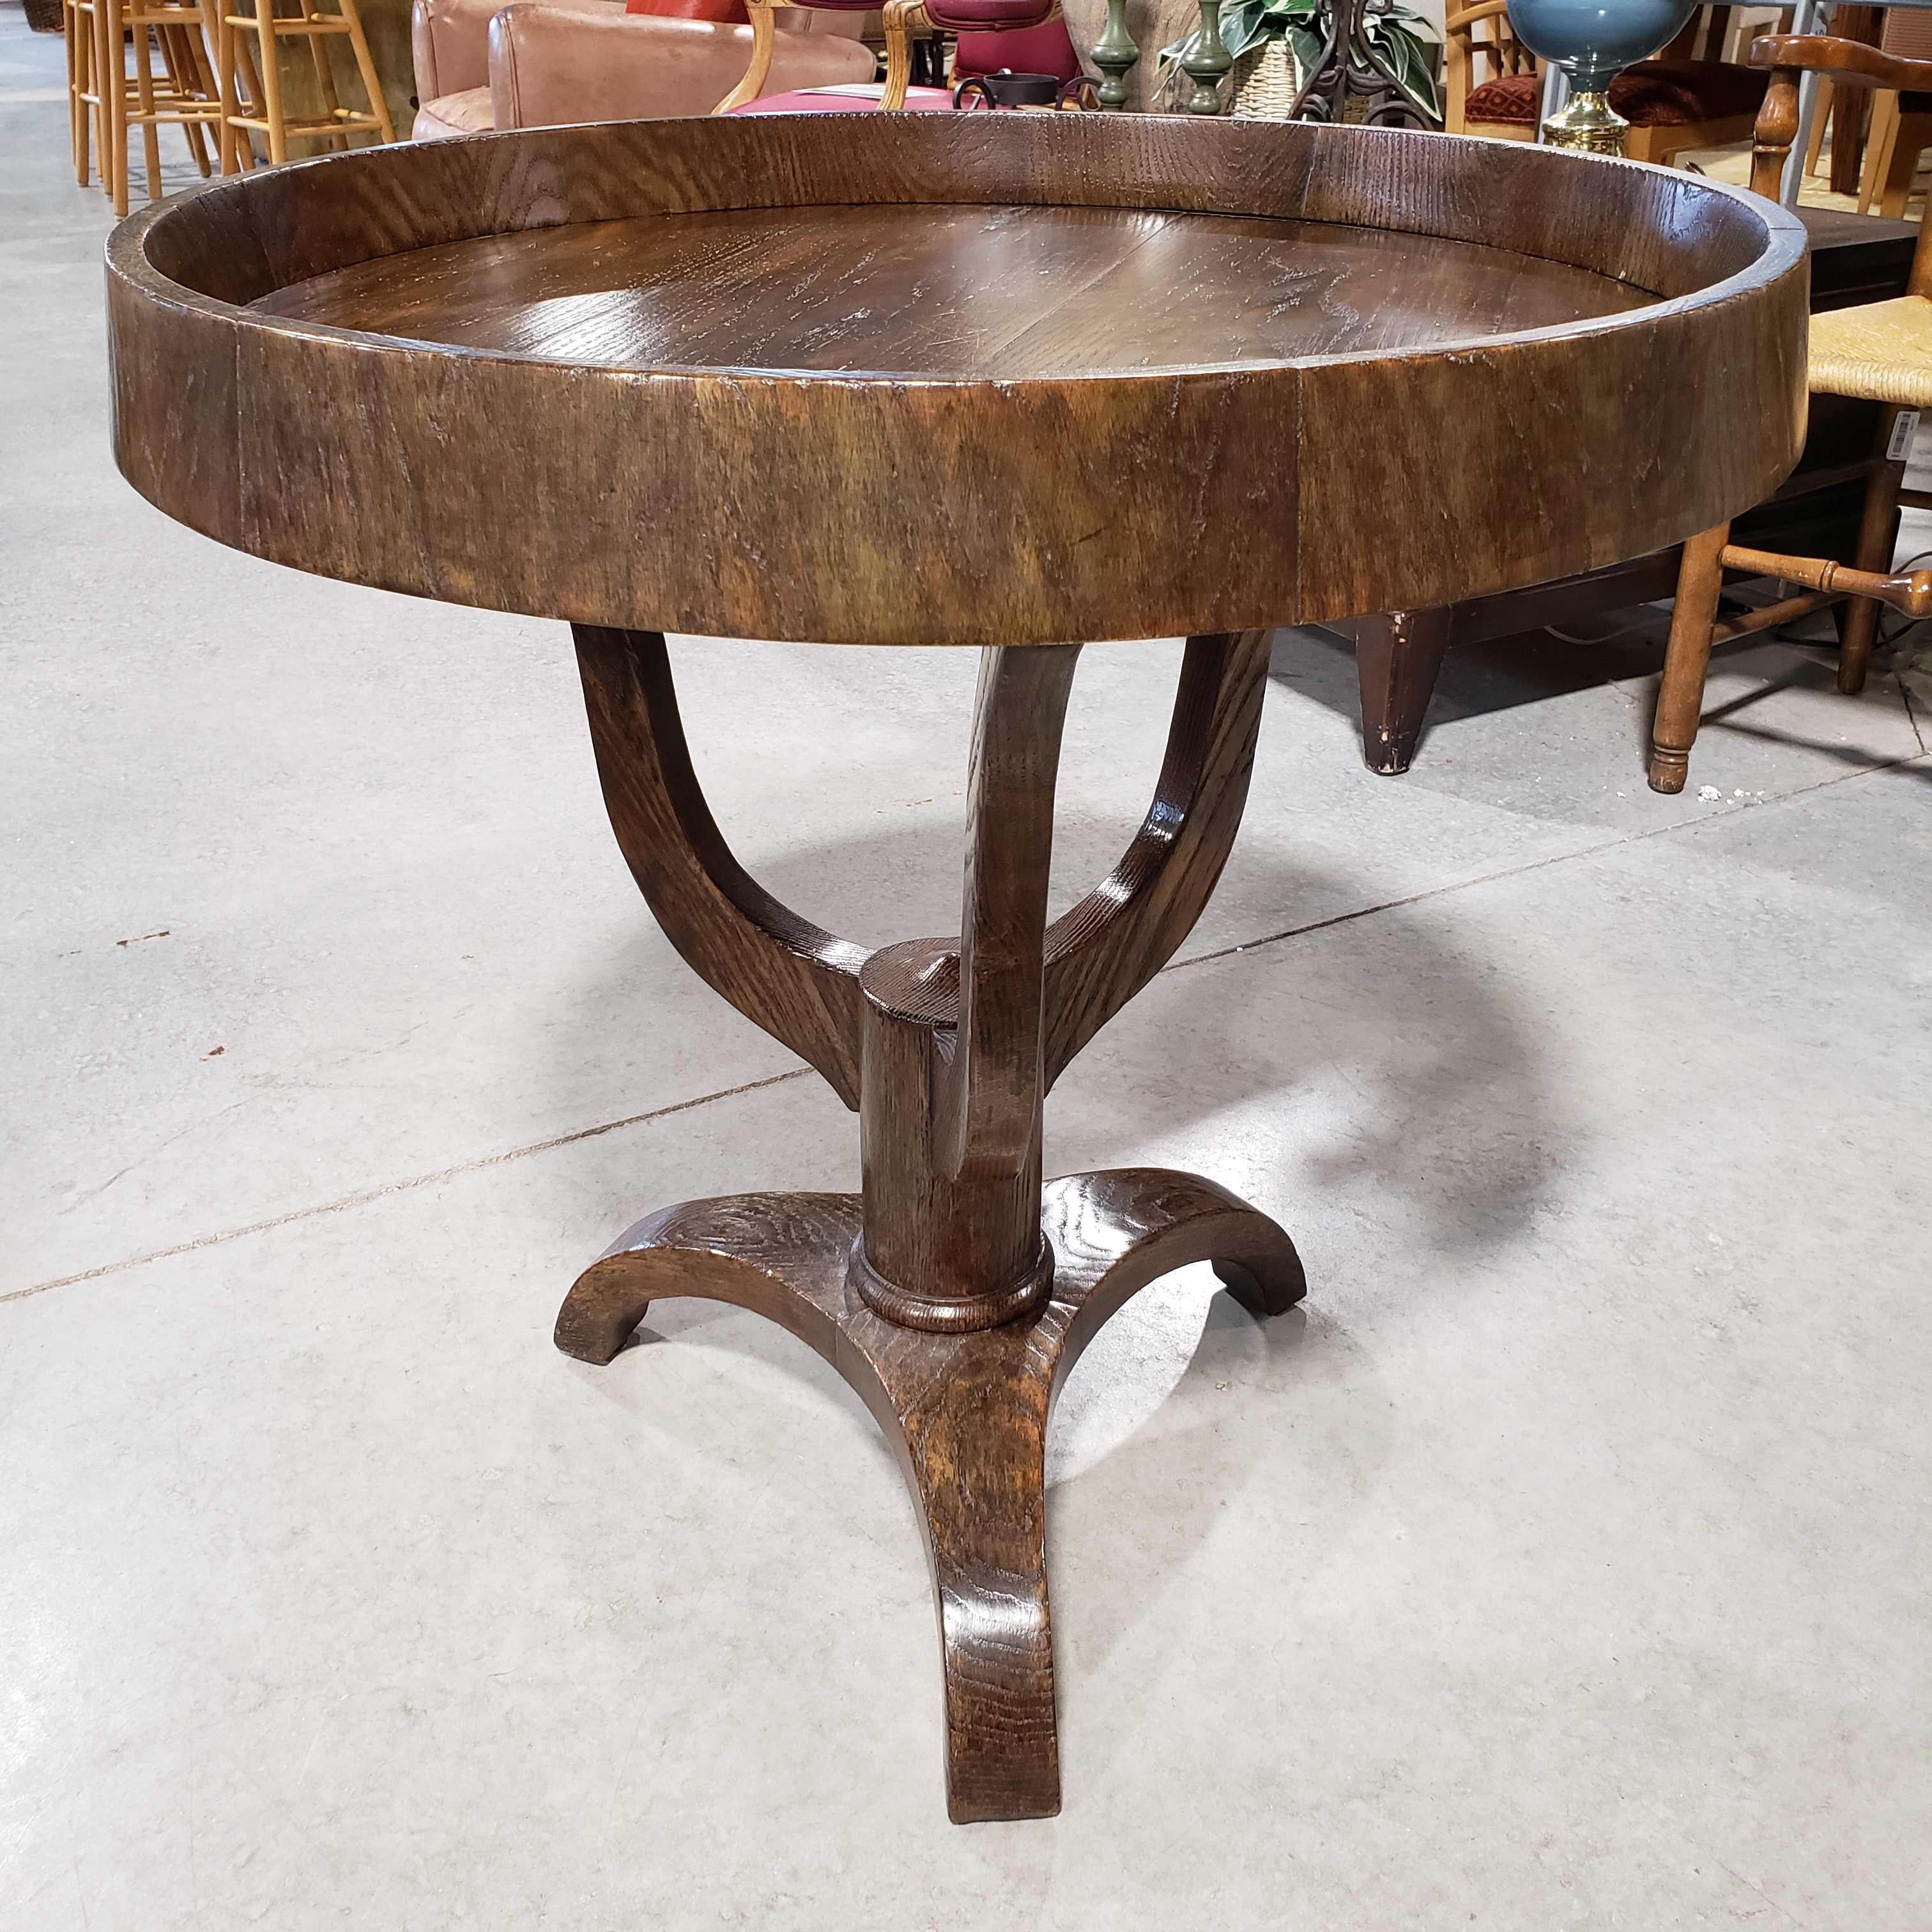 "28"" Round x 28.5"" Carved Wood with Inset Round Top Pedestal Base Accent Table"